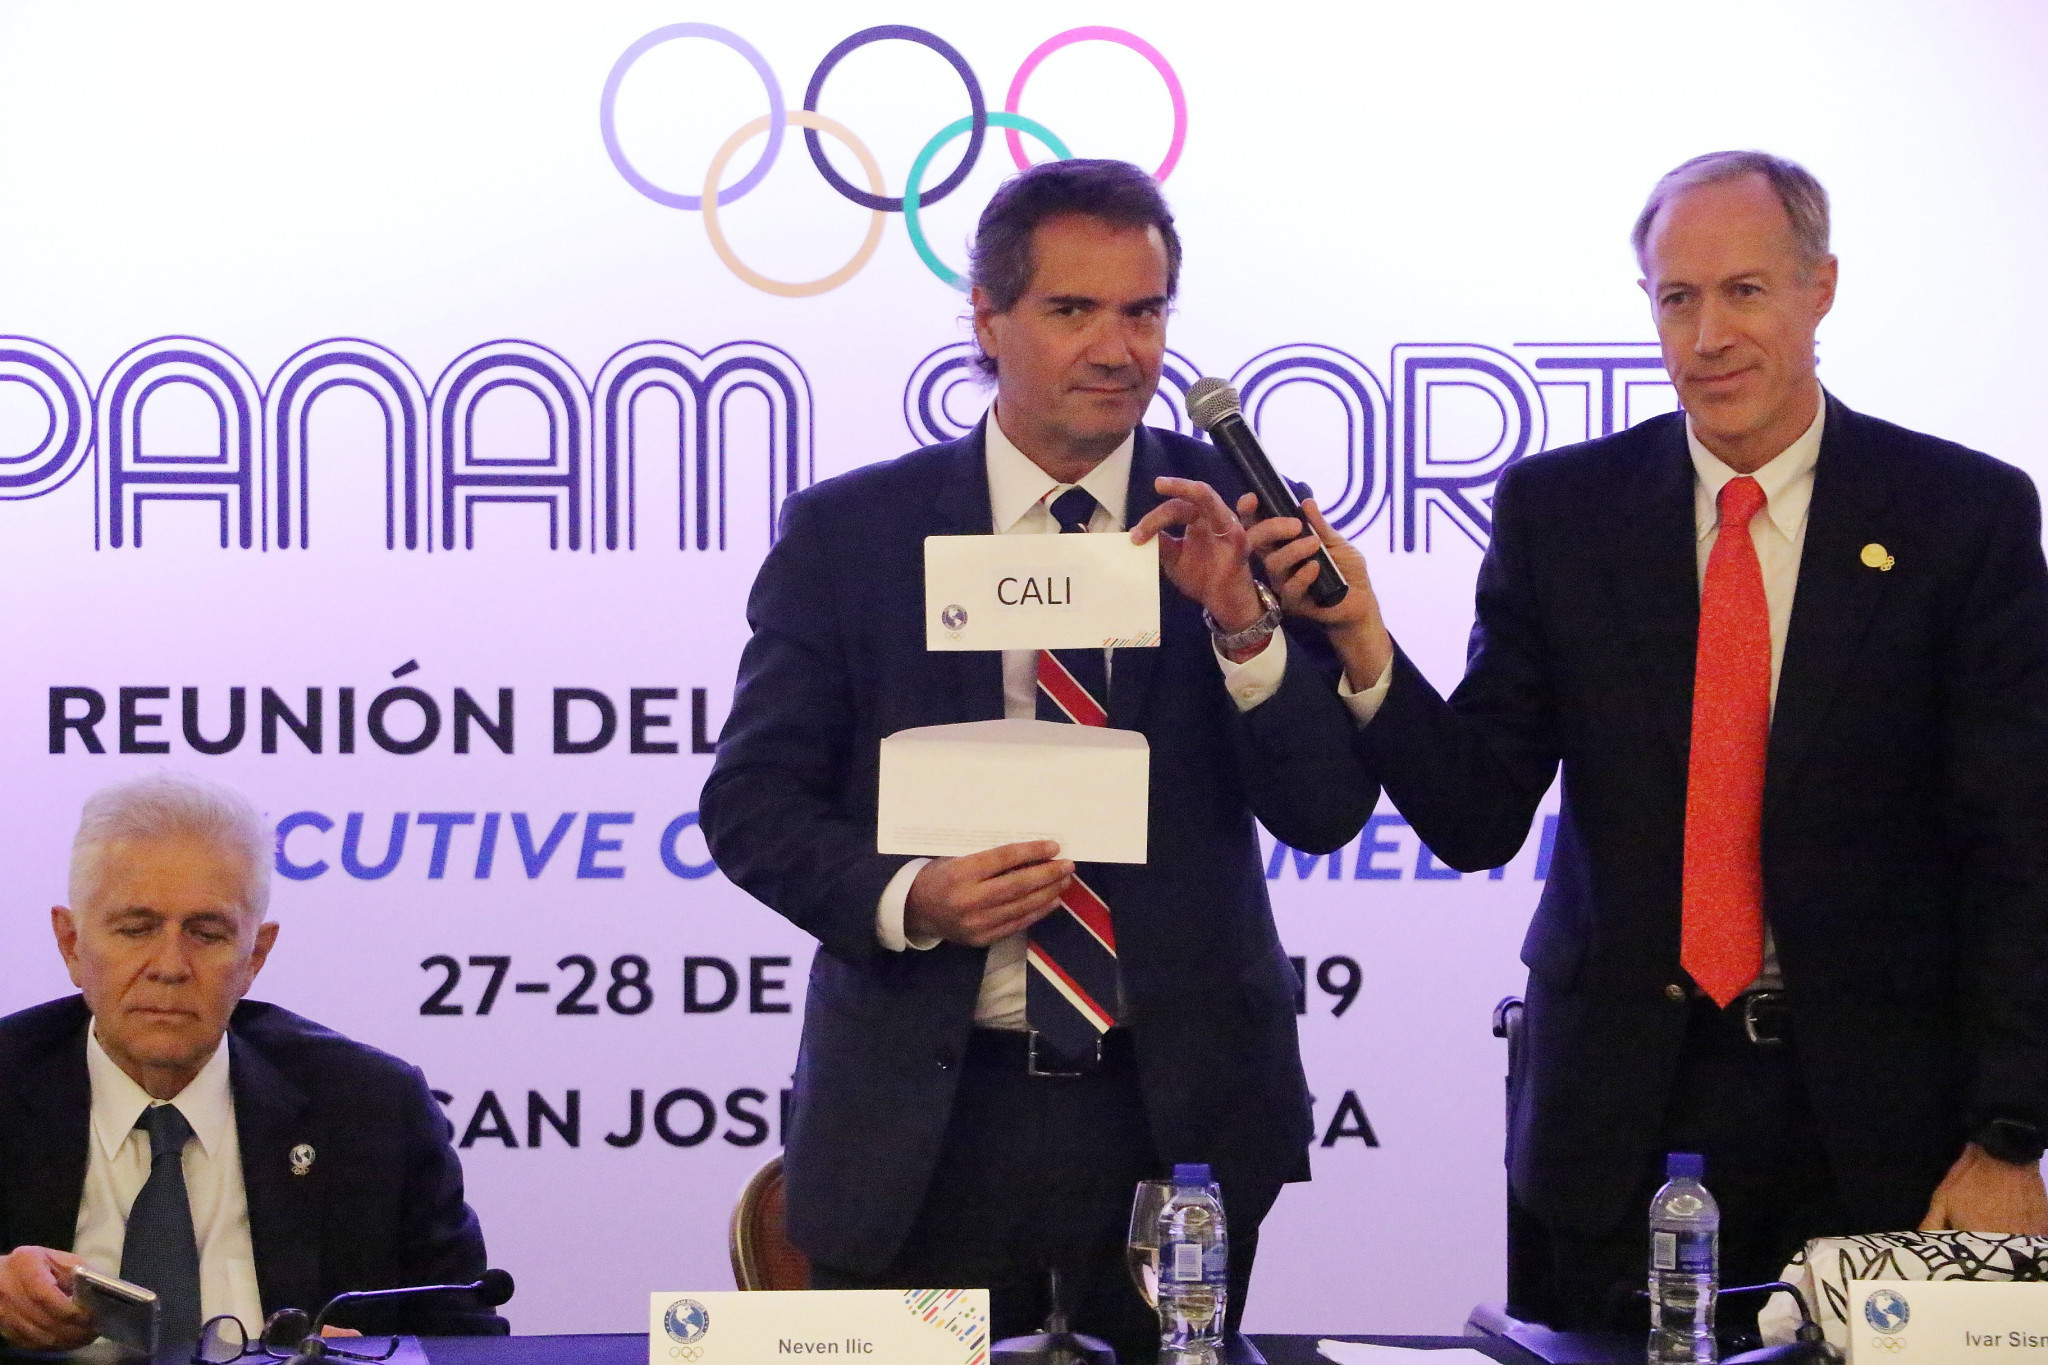 Panam Sports President Neven Ilic announces that Cali will host the first edition of the Junior Pan American Games in 2021 ©Panam Sports